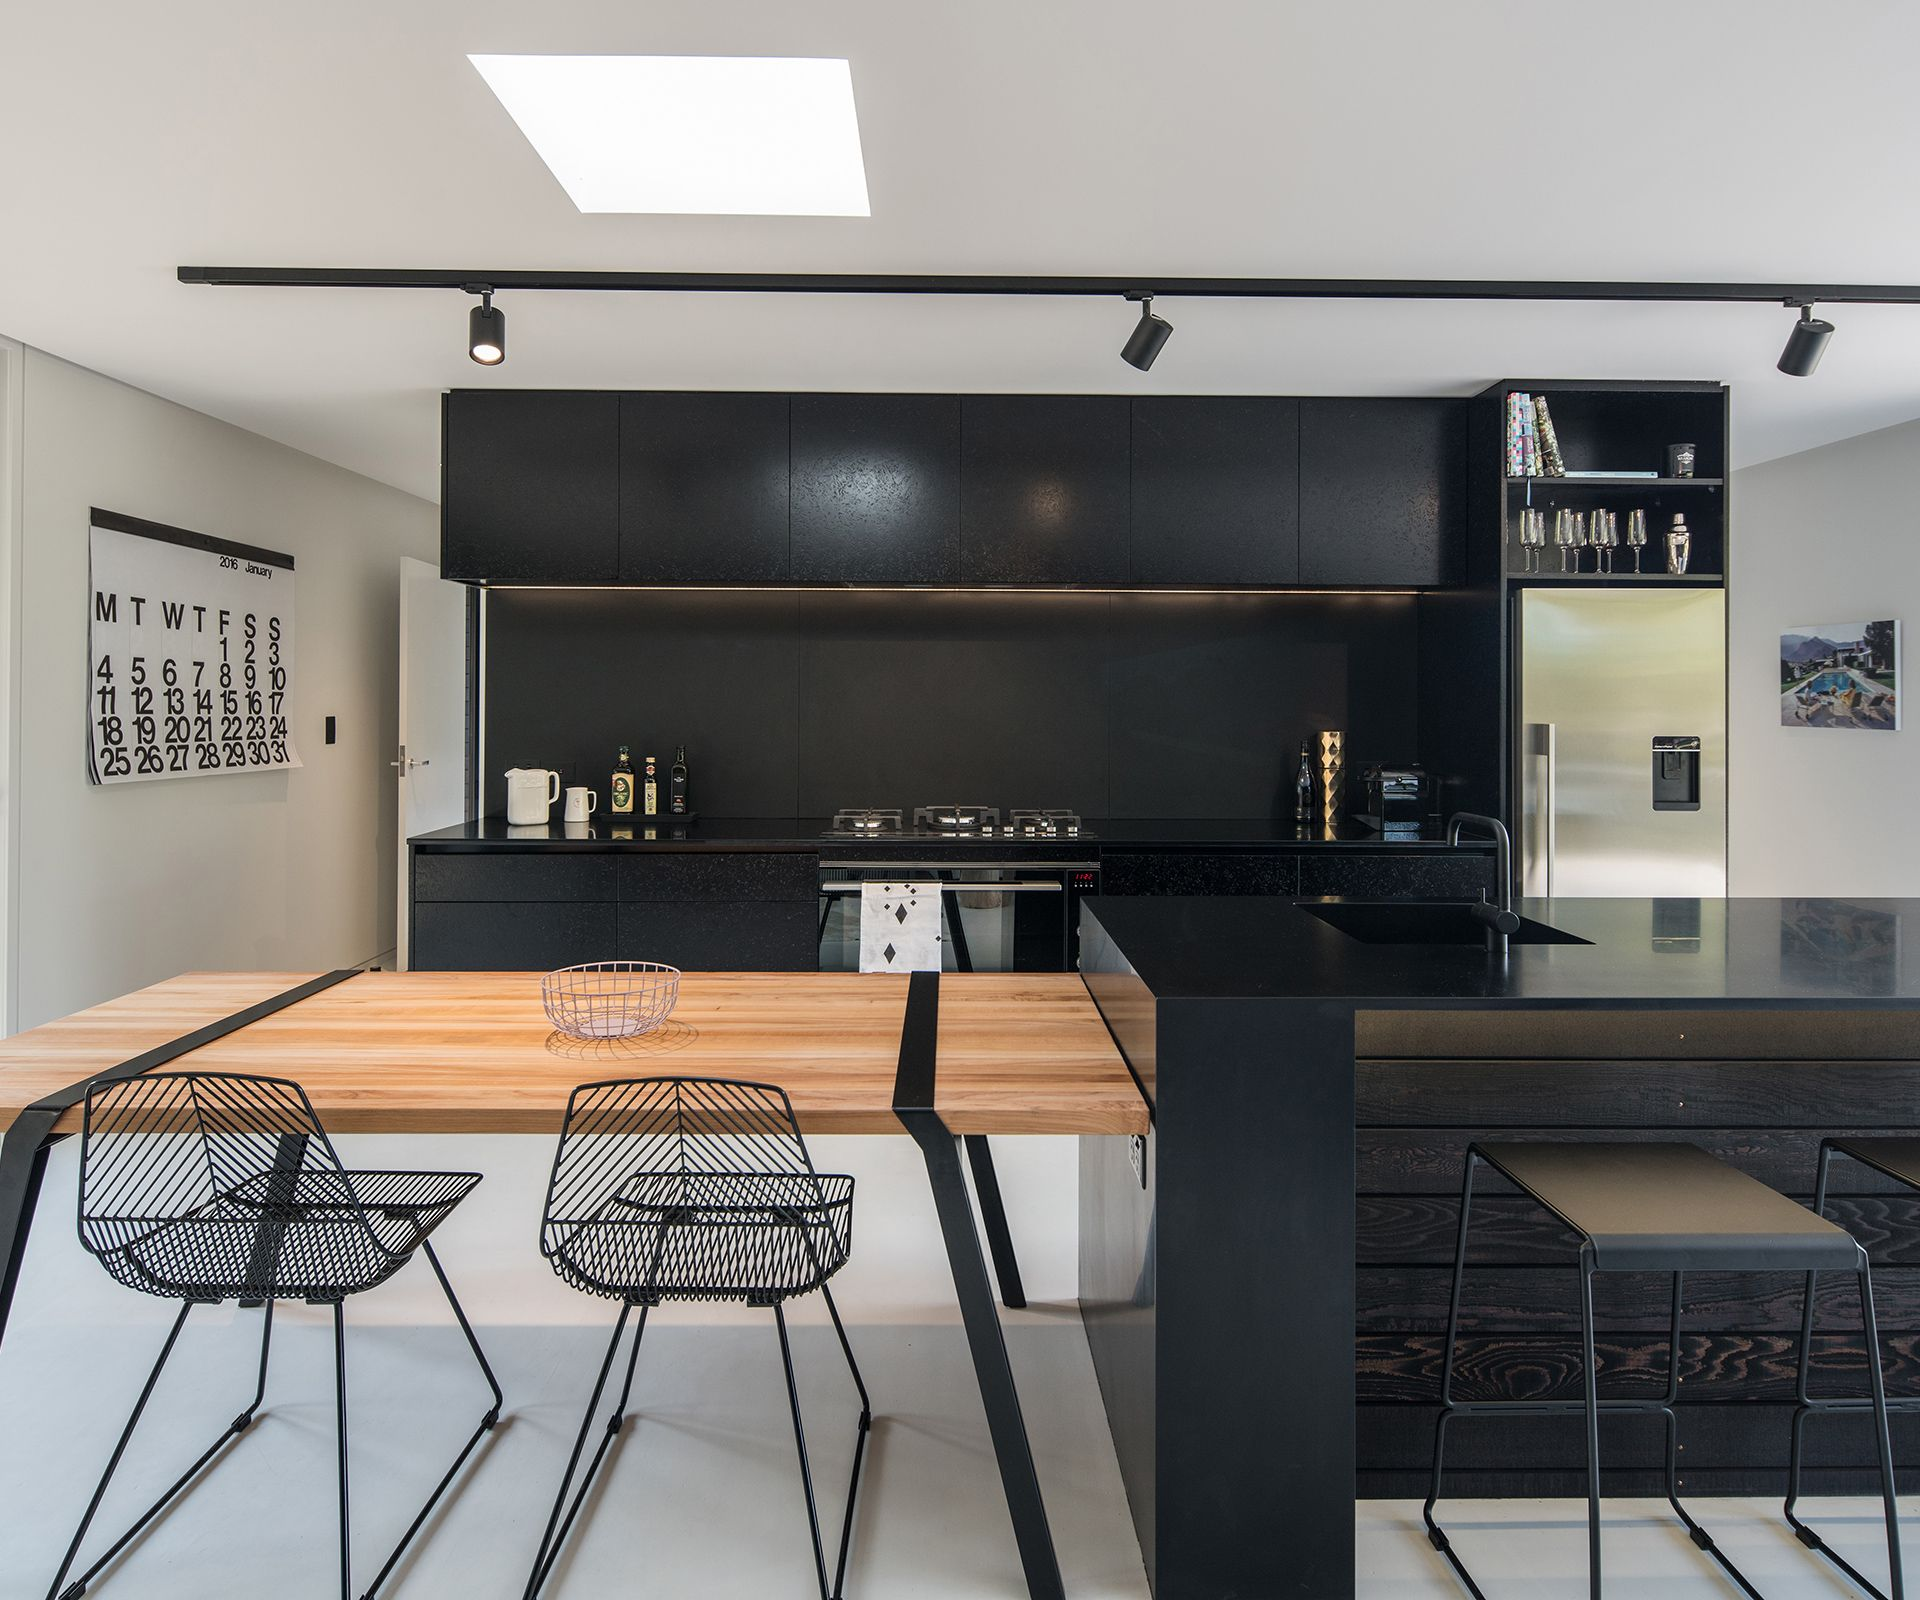 Kitchen Art Nz: An Architect's Own Sleek-but-simple Holiday Getaway